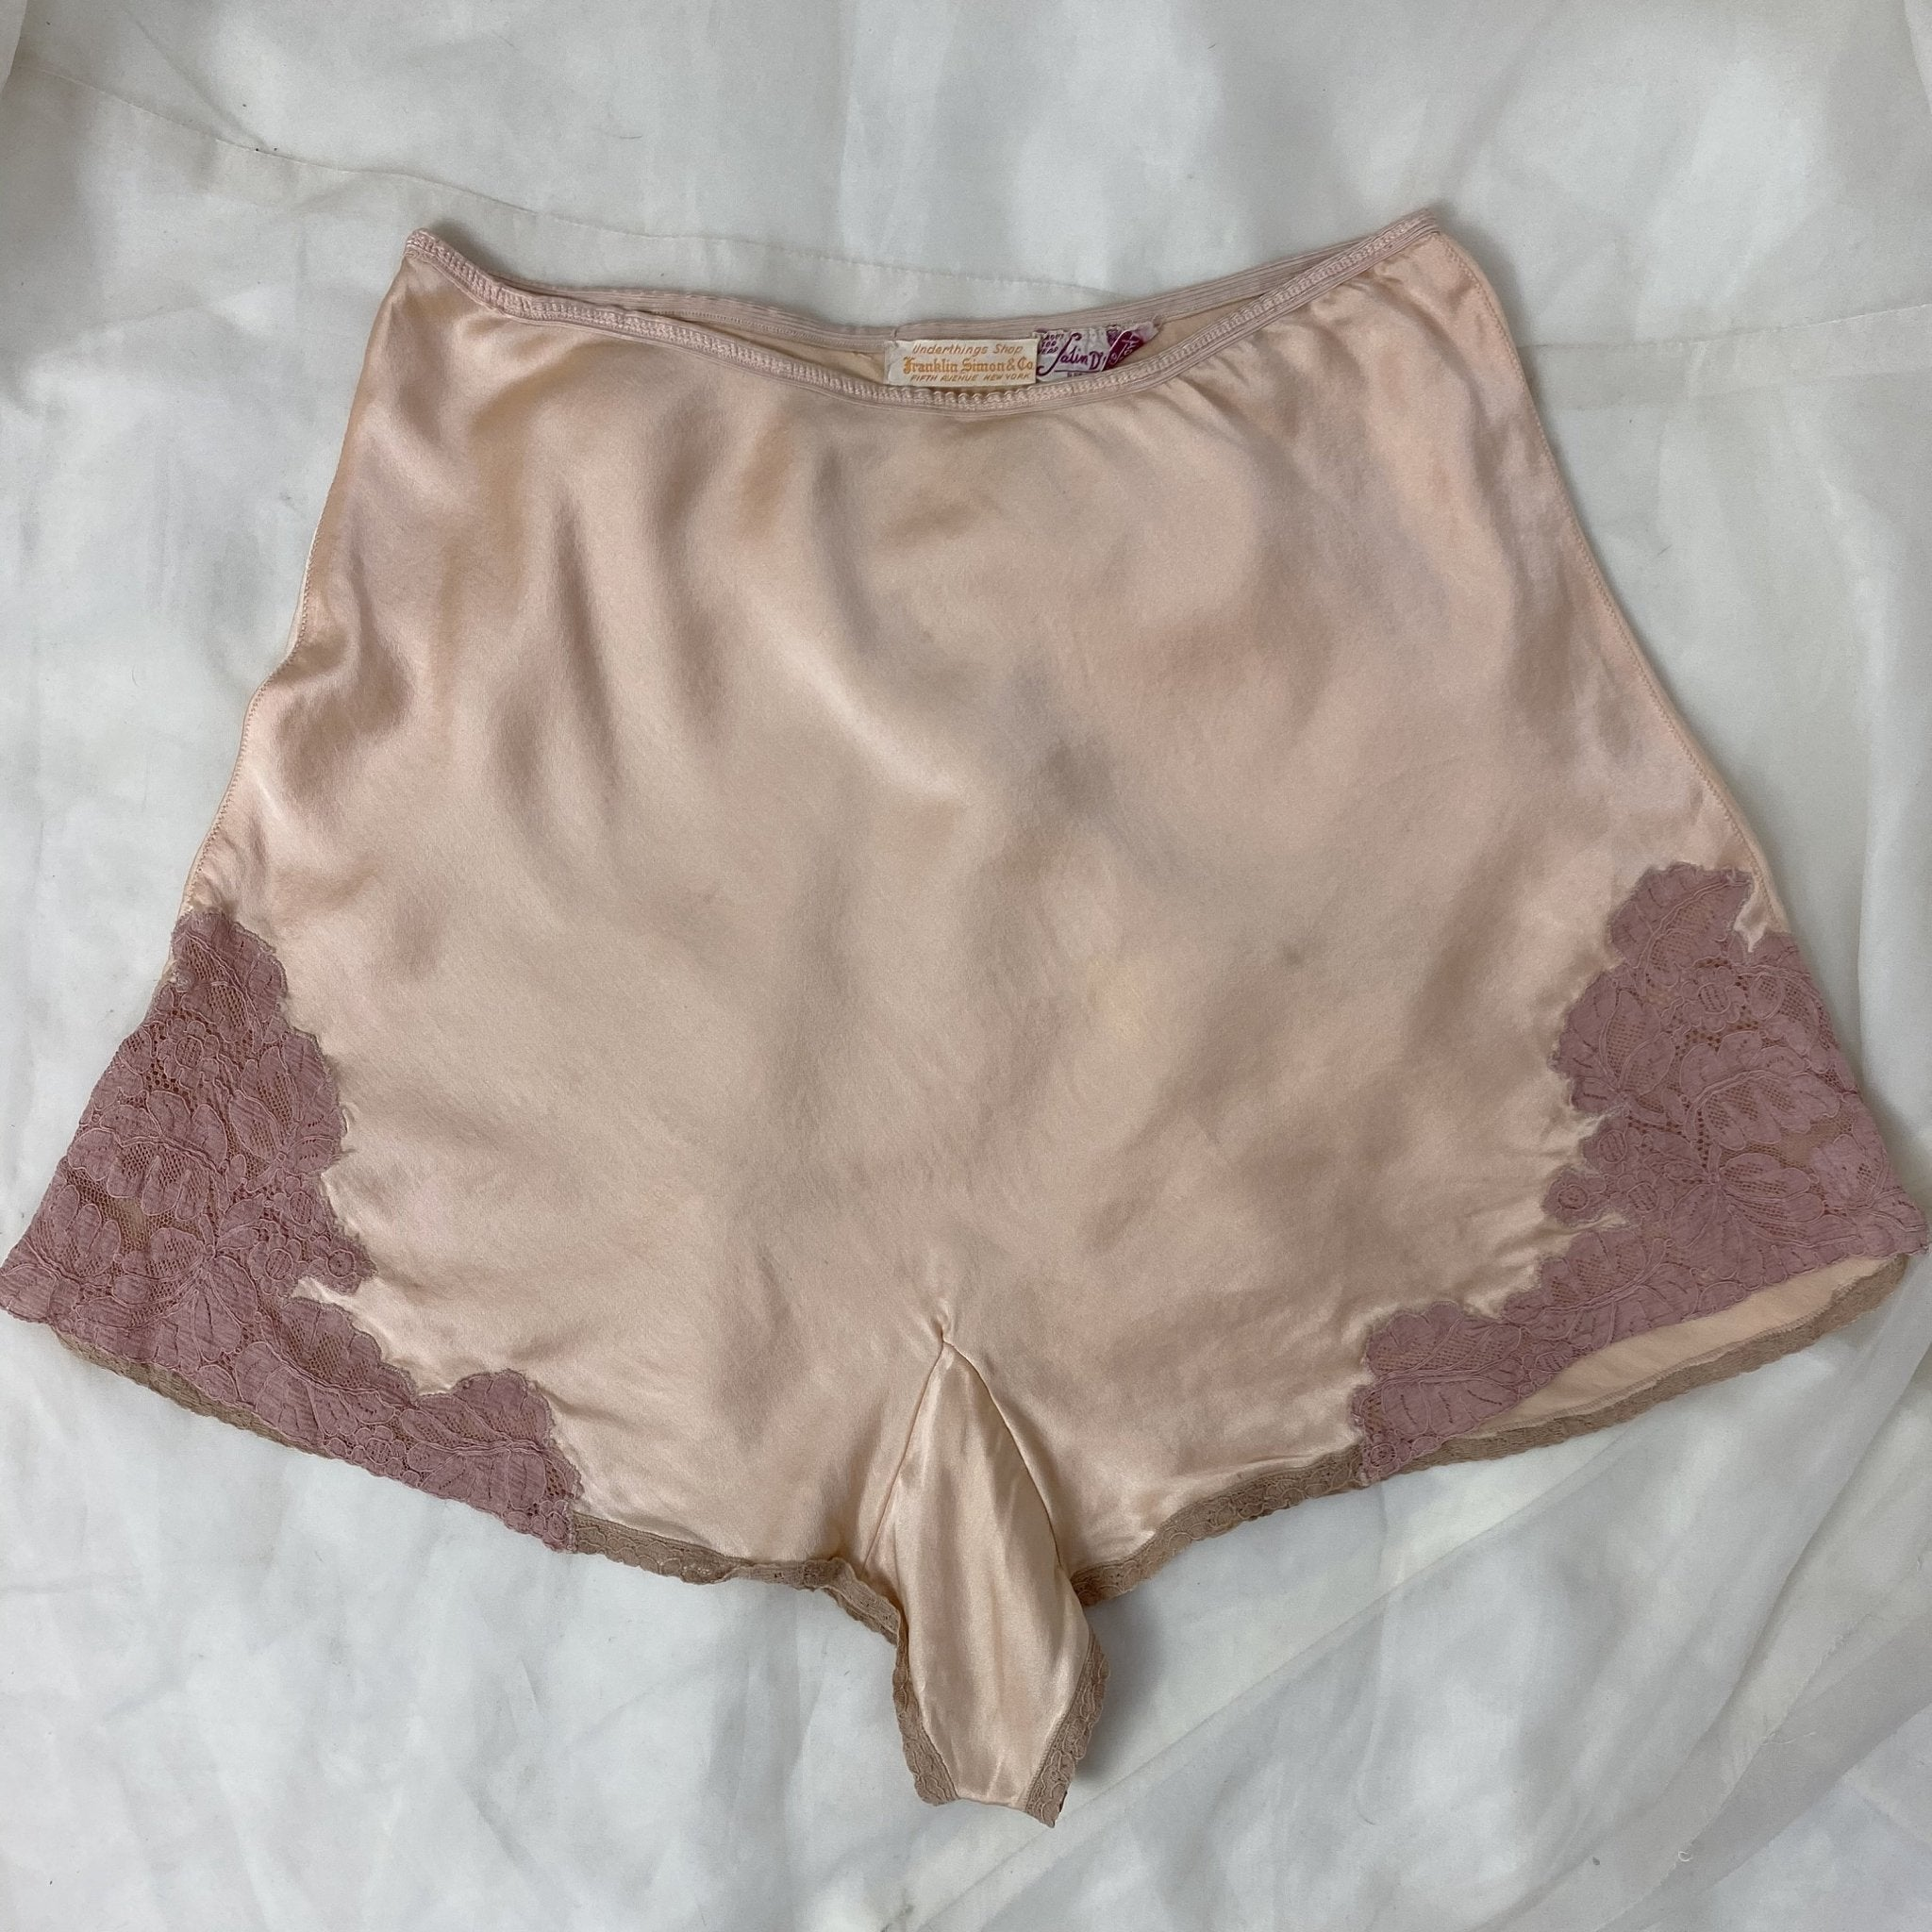 Vintage 1930's Tap Pants | Champagne Pink Silk Charmeuse with Mauve Lace Appliqués | Size M, LG | Franklin, Simon, & Co. - Daggers & Dames